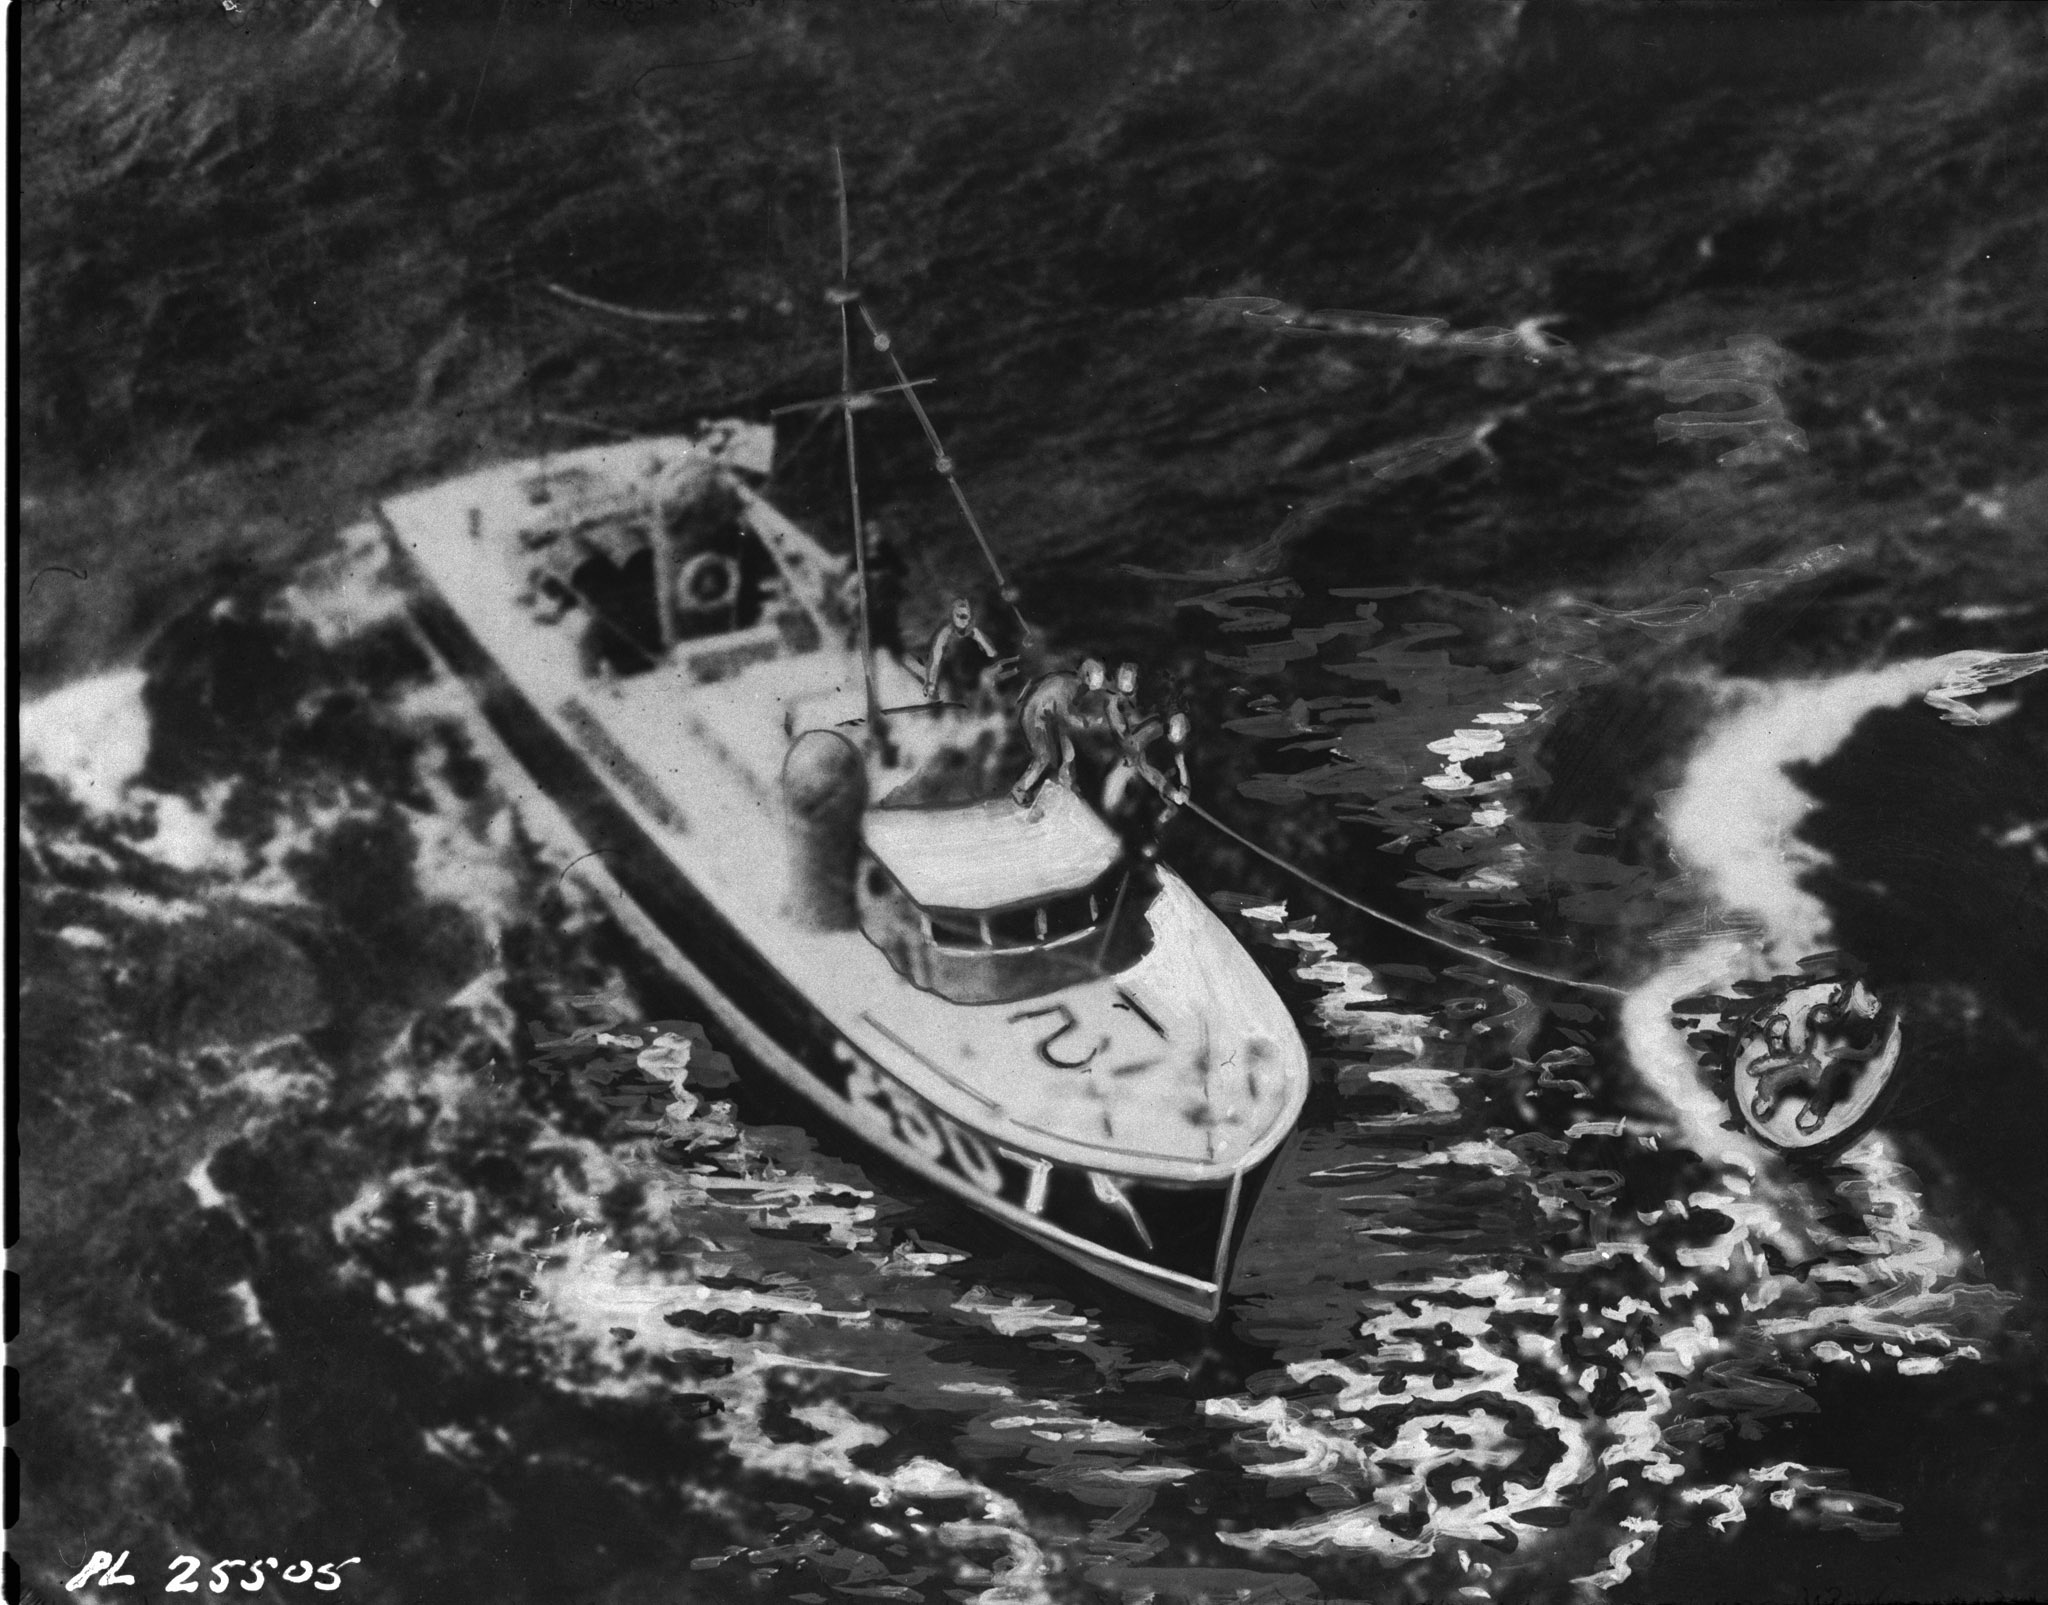 "This retouched photograph shows an air-sea-rescue launch hauling to safety survivors of the Royal Canadian Air Force Canso ""C for Charlie"" who spent 21 hours in the stormy North Atlantic after sinking a German submarine. Badly damaged by the subs guns, the burning plane, piloted by Flight Lieutenant David Hornell was forced into the sea. The crew of eight could not crowd into the one serviceable rubber dinghy and took turns clinging to the side. Sergeant Donald Scott and Sergeant Fernand St. Laurent died of exposure before help came. Flight Lieutenant Hornell died a few minutes after this picture was taken and was posthumously awarded the Victoria Cross. Other members of the crew, all of whom were honoured for their heroic exploit were Flying Officer Bernard Denomy, Flying Officer Graham Campbell, Flying Officer Sidney E. Matheson, Flight Sergeant Israel J. Bodnoff and Flight Sergeant Sidney Cole. PHOTO: DND Archives, PL-25505"